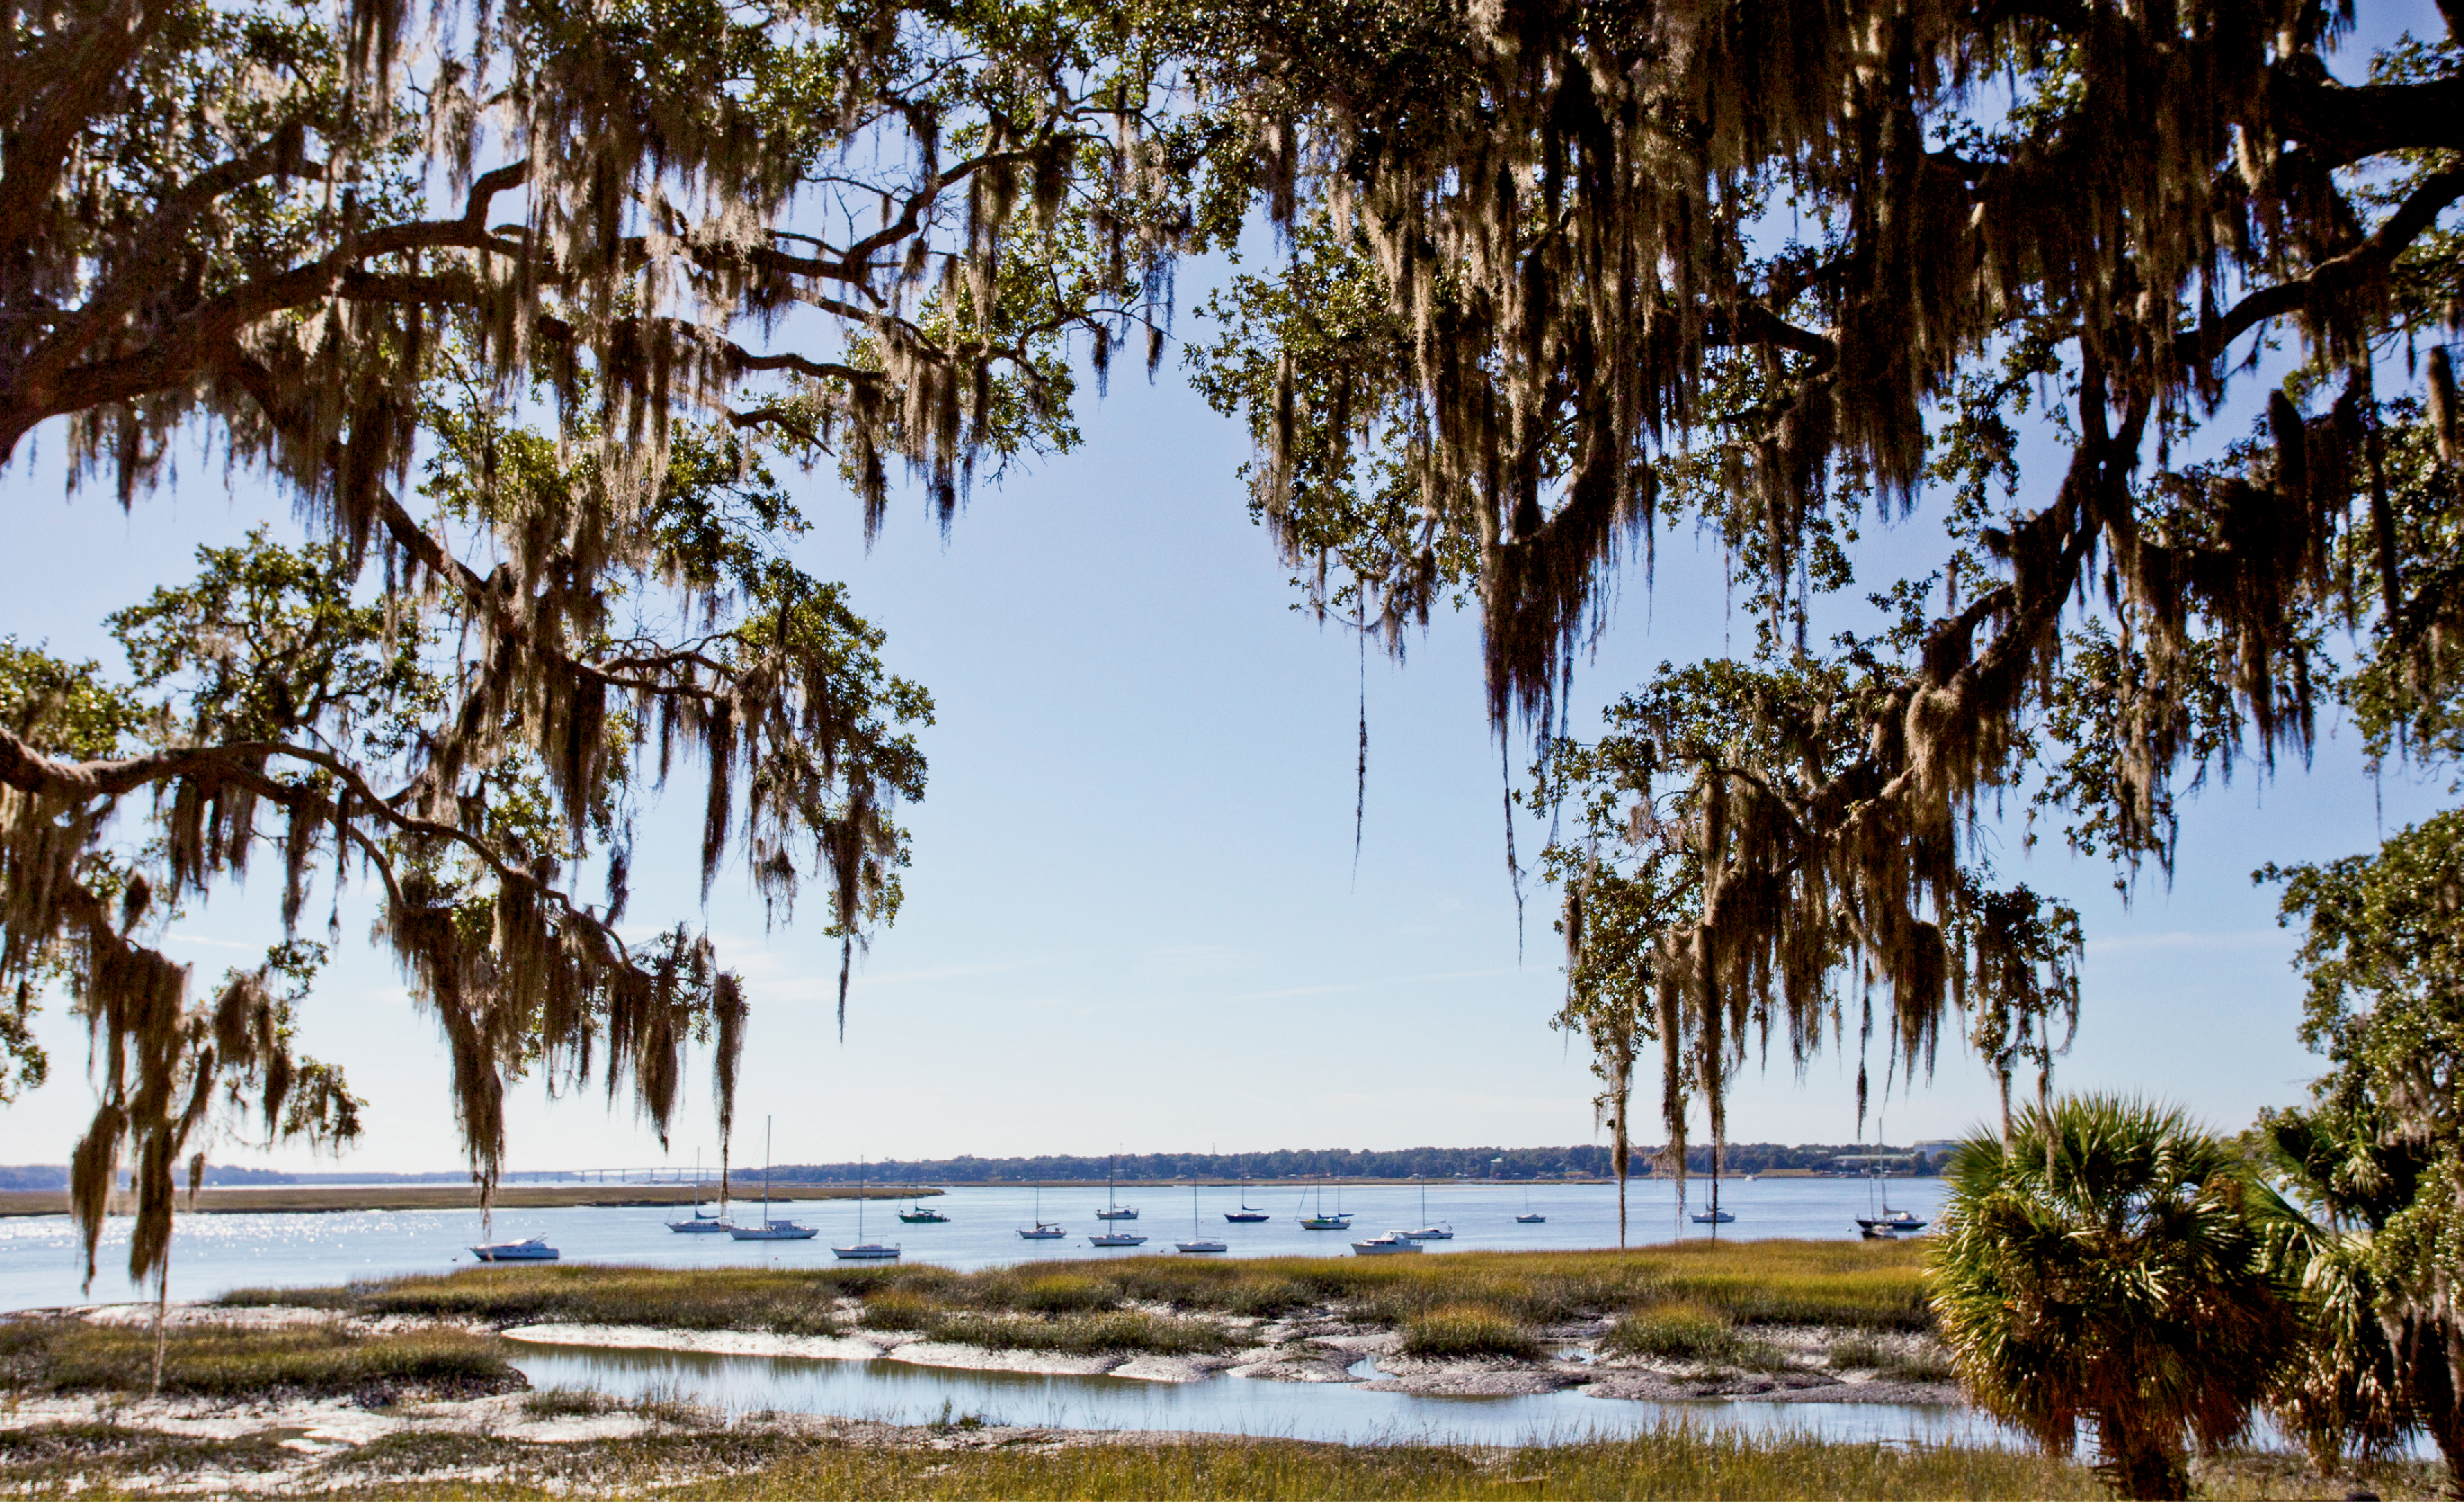 A Natural Harbor: The tidal Beaufort River as seen from Bay Street, looking toward Port Royal and Parris Island